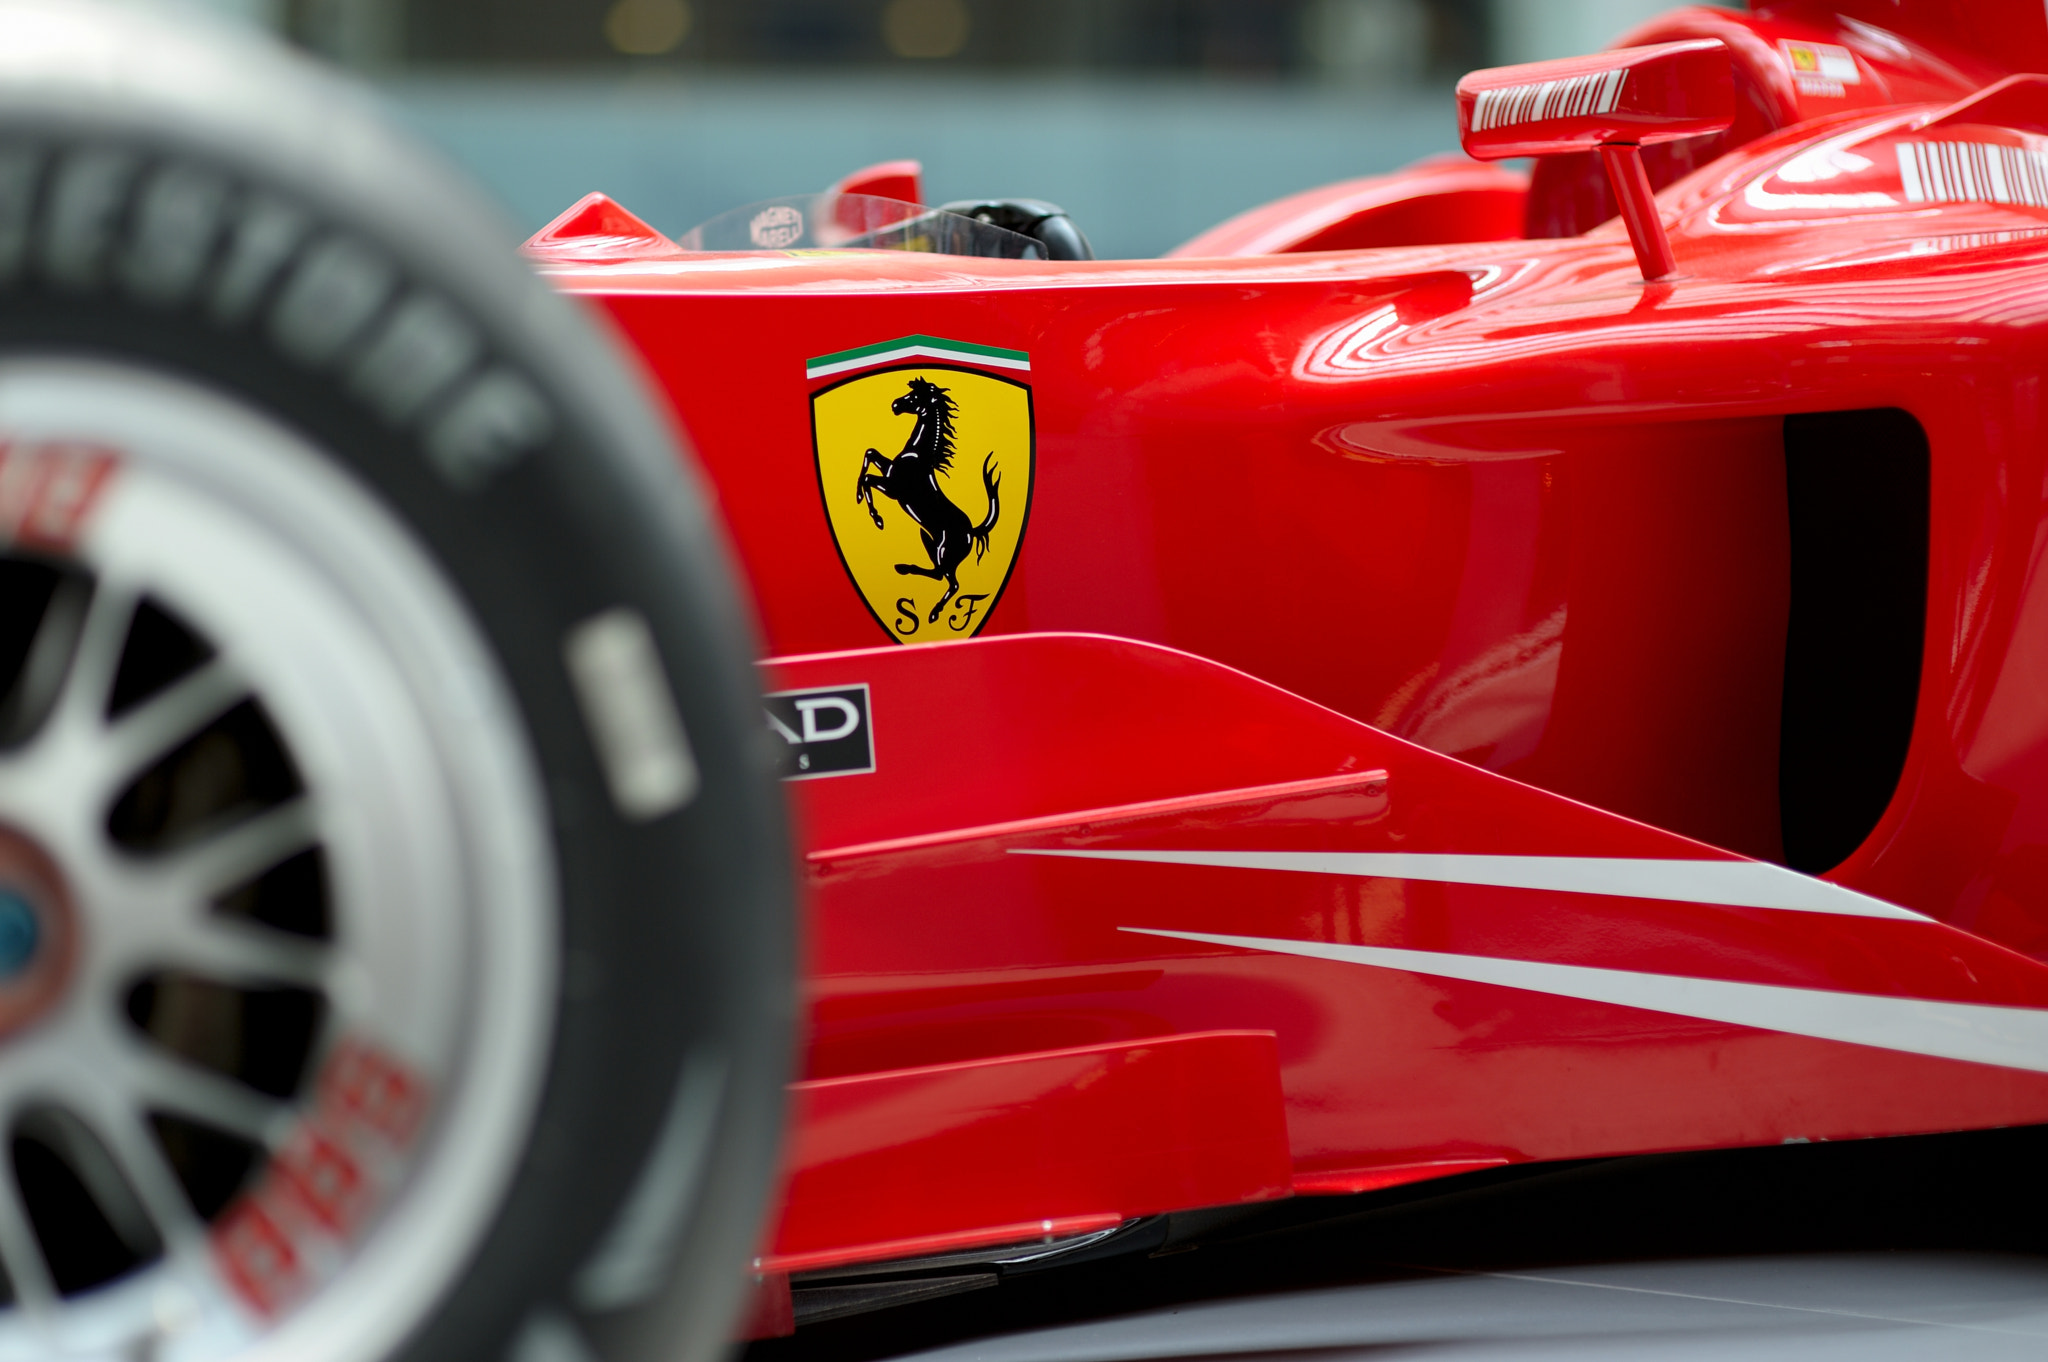 Photograph Ferrari F2008 (Scuderia Ferrari) by Eddie Cheng on 500px